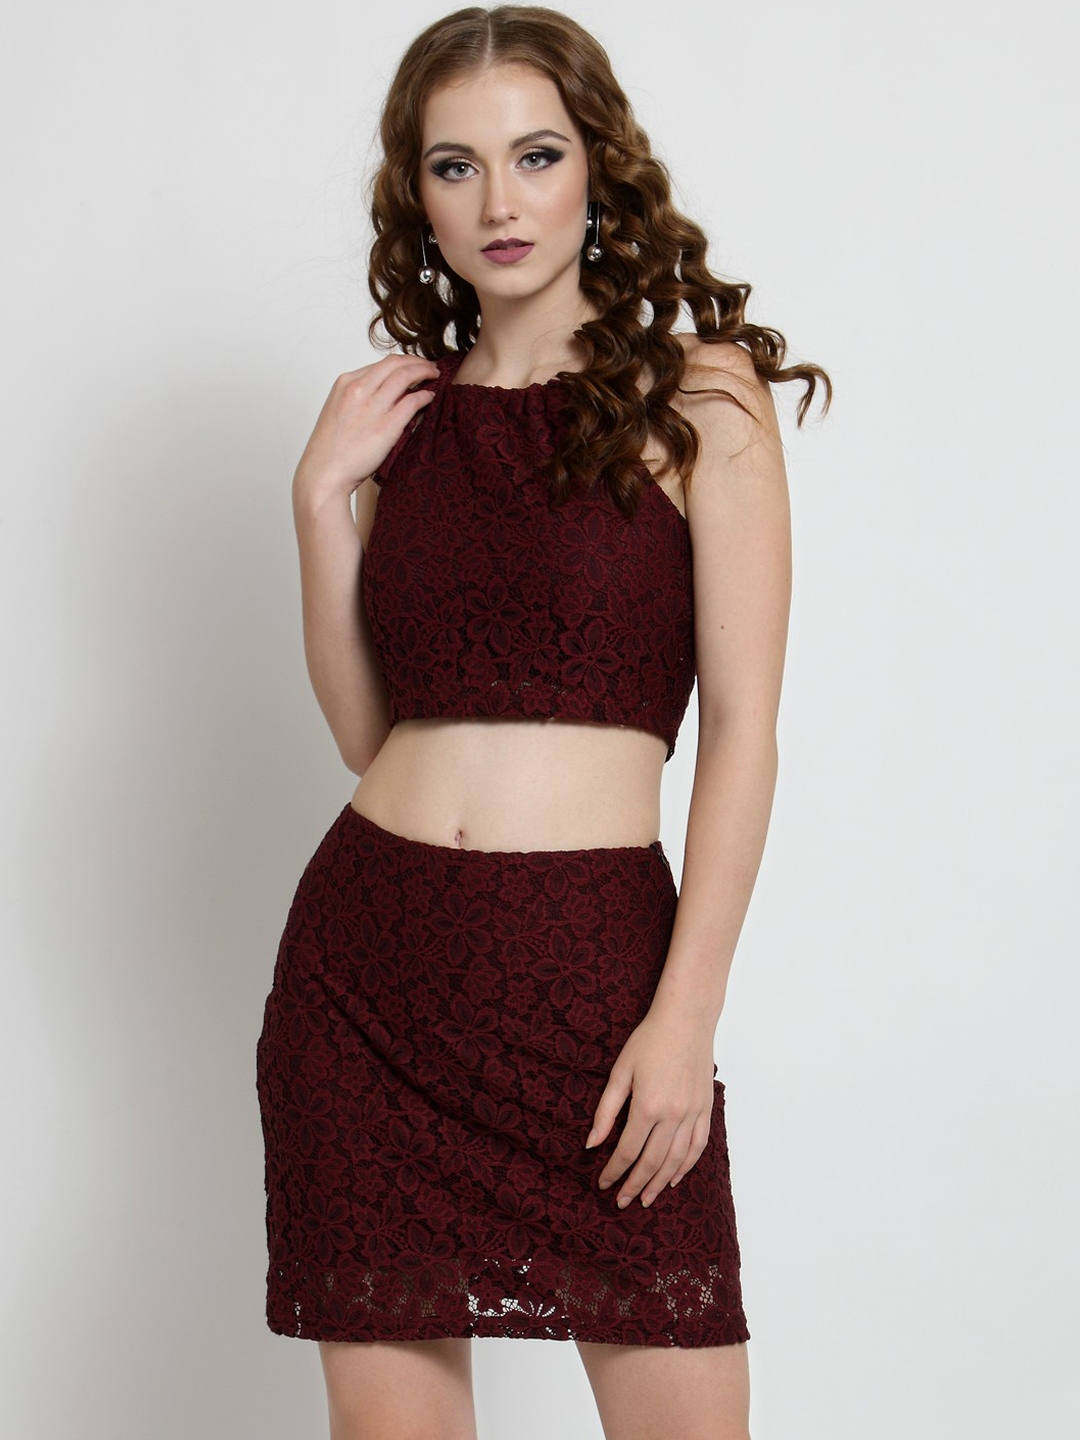 018431a8d63 Two Piece Dresses Lace Top - Gomes Weine AG